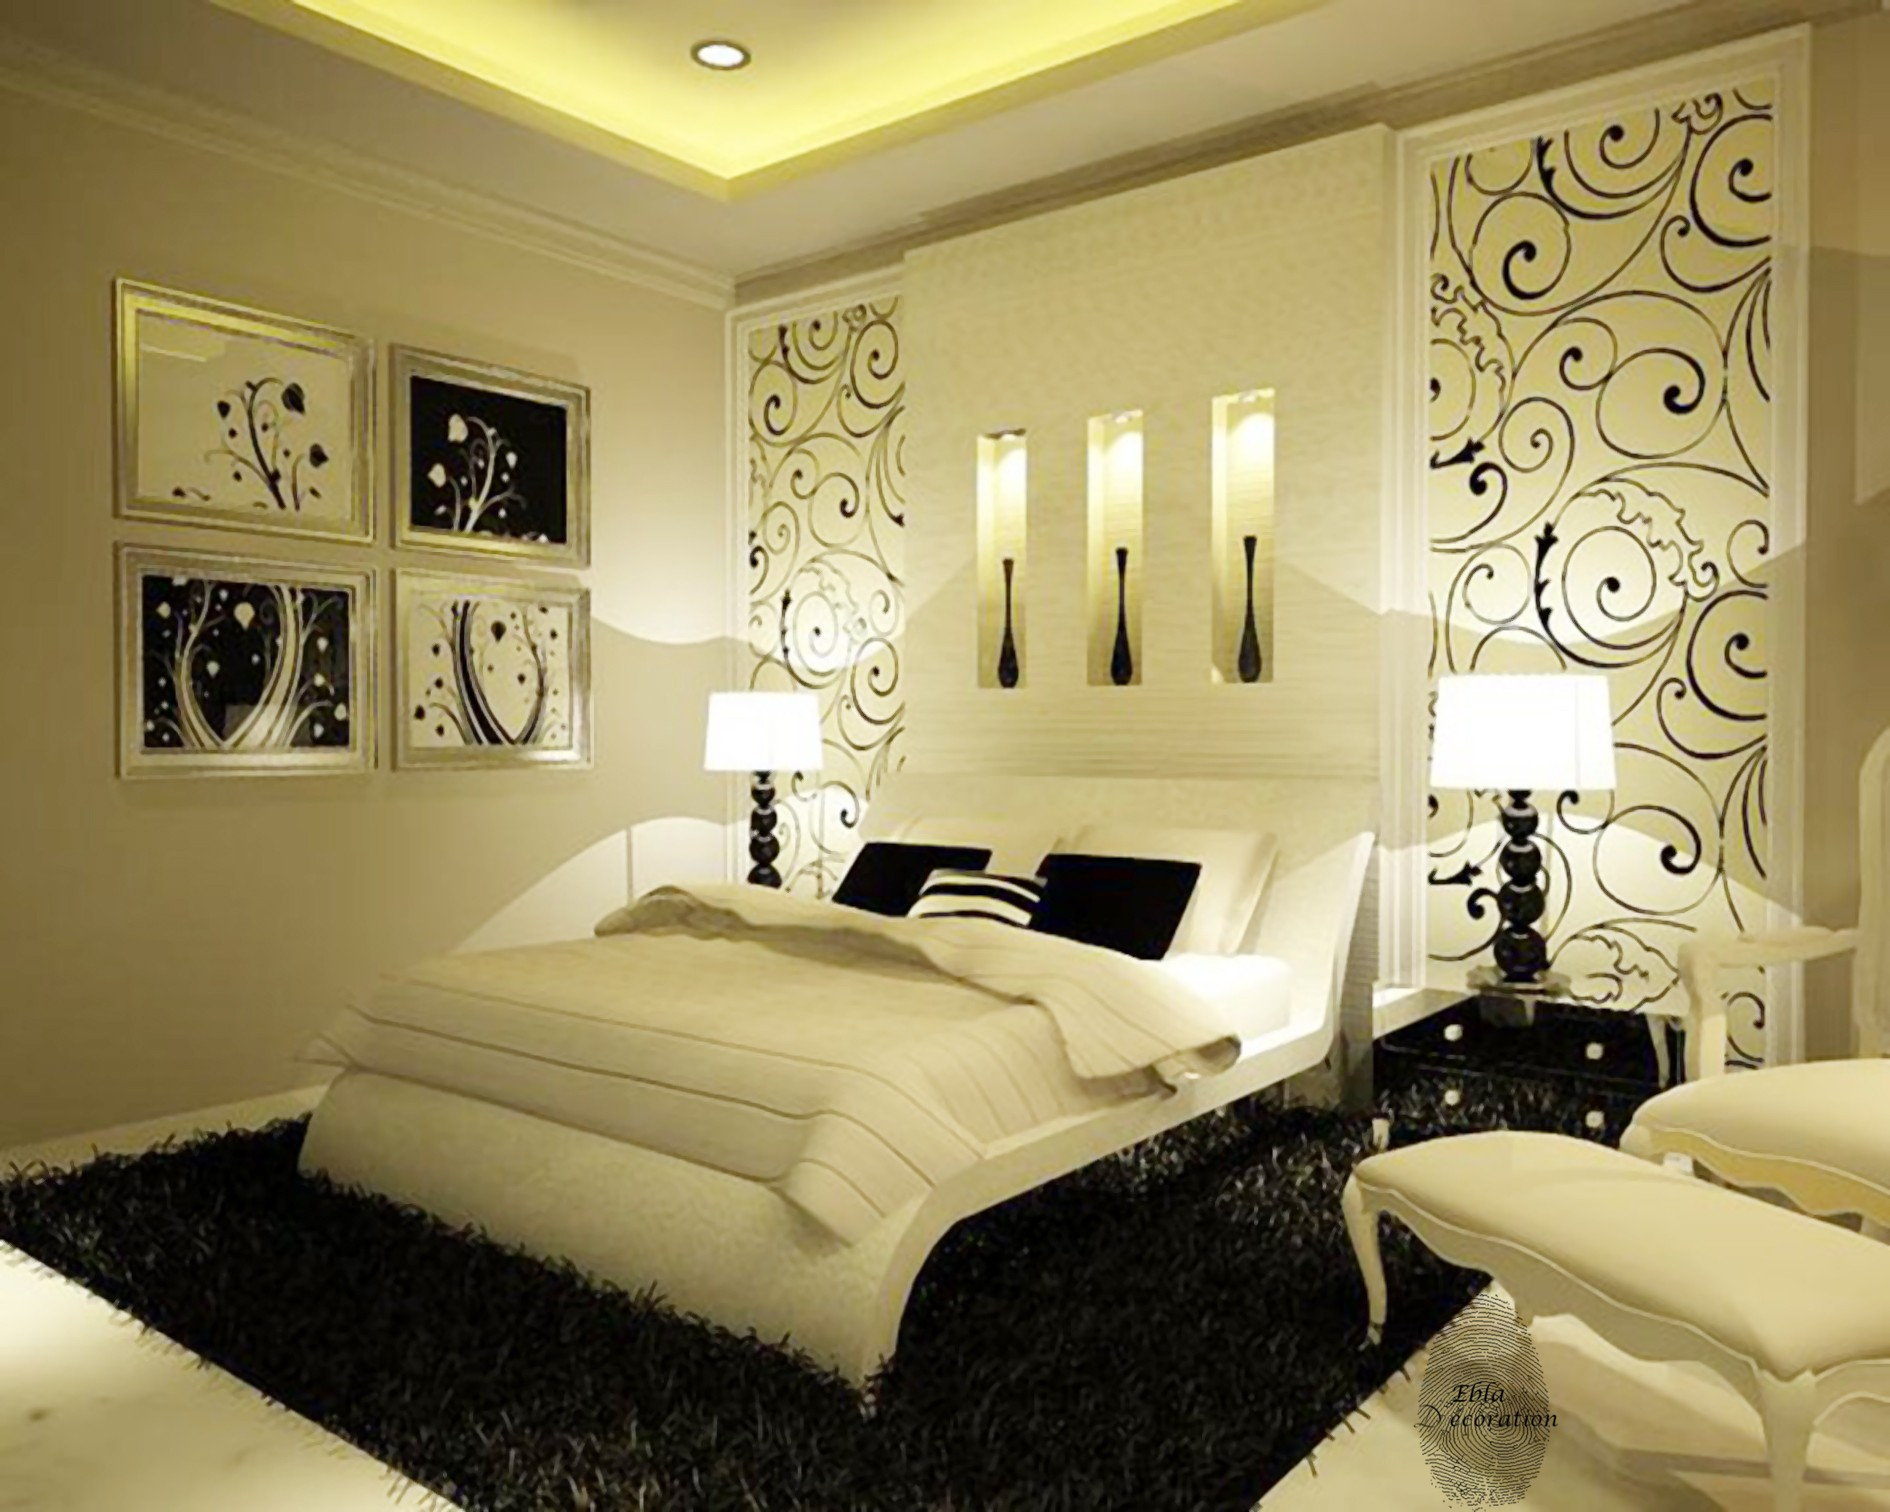 50 Best Bedroom Interior Design 2018 Decor Or Design